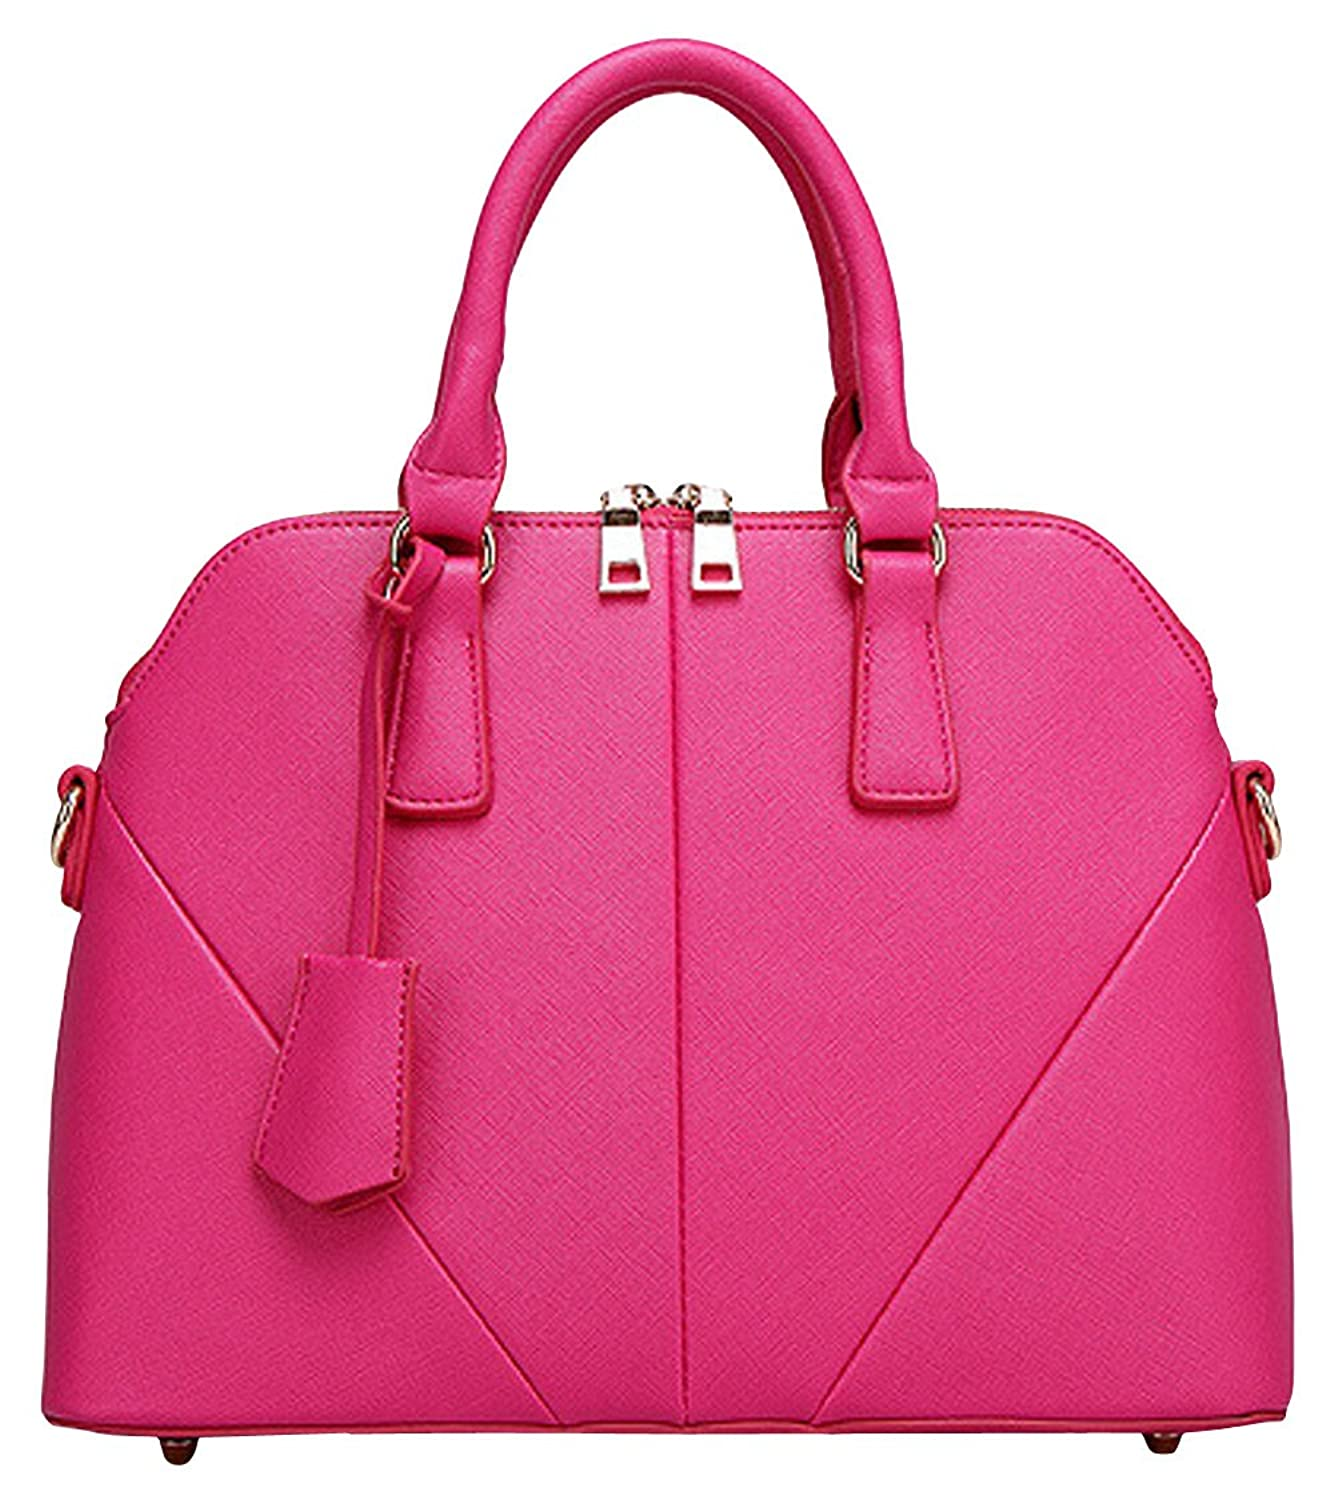 Pinklily Women's Hobo Carrier Shall Handbag Rose Red One Size